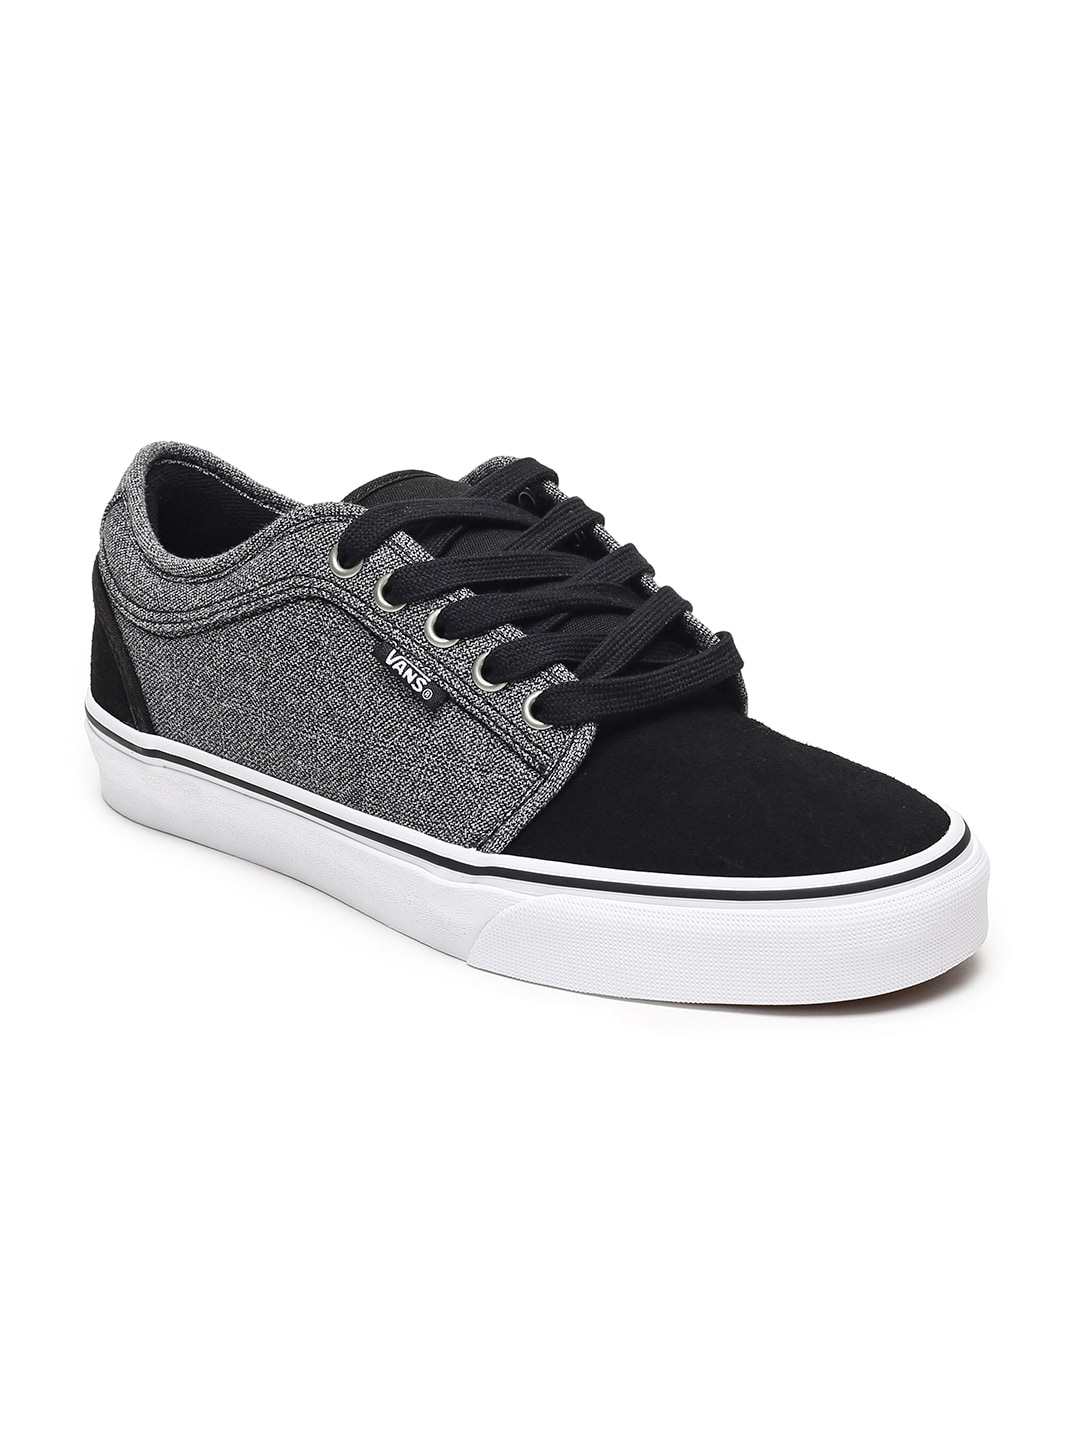 2c02f1c93064 Vans Casual Shoes - Buy Vans Casual Shoes Online in India